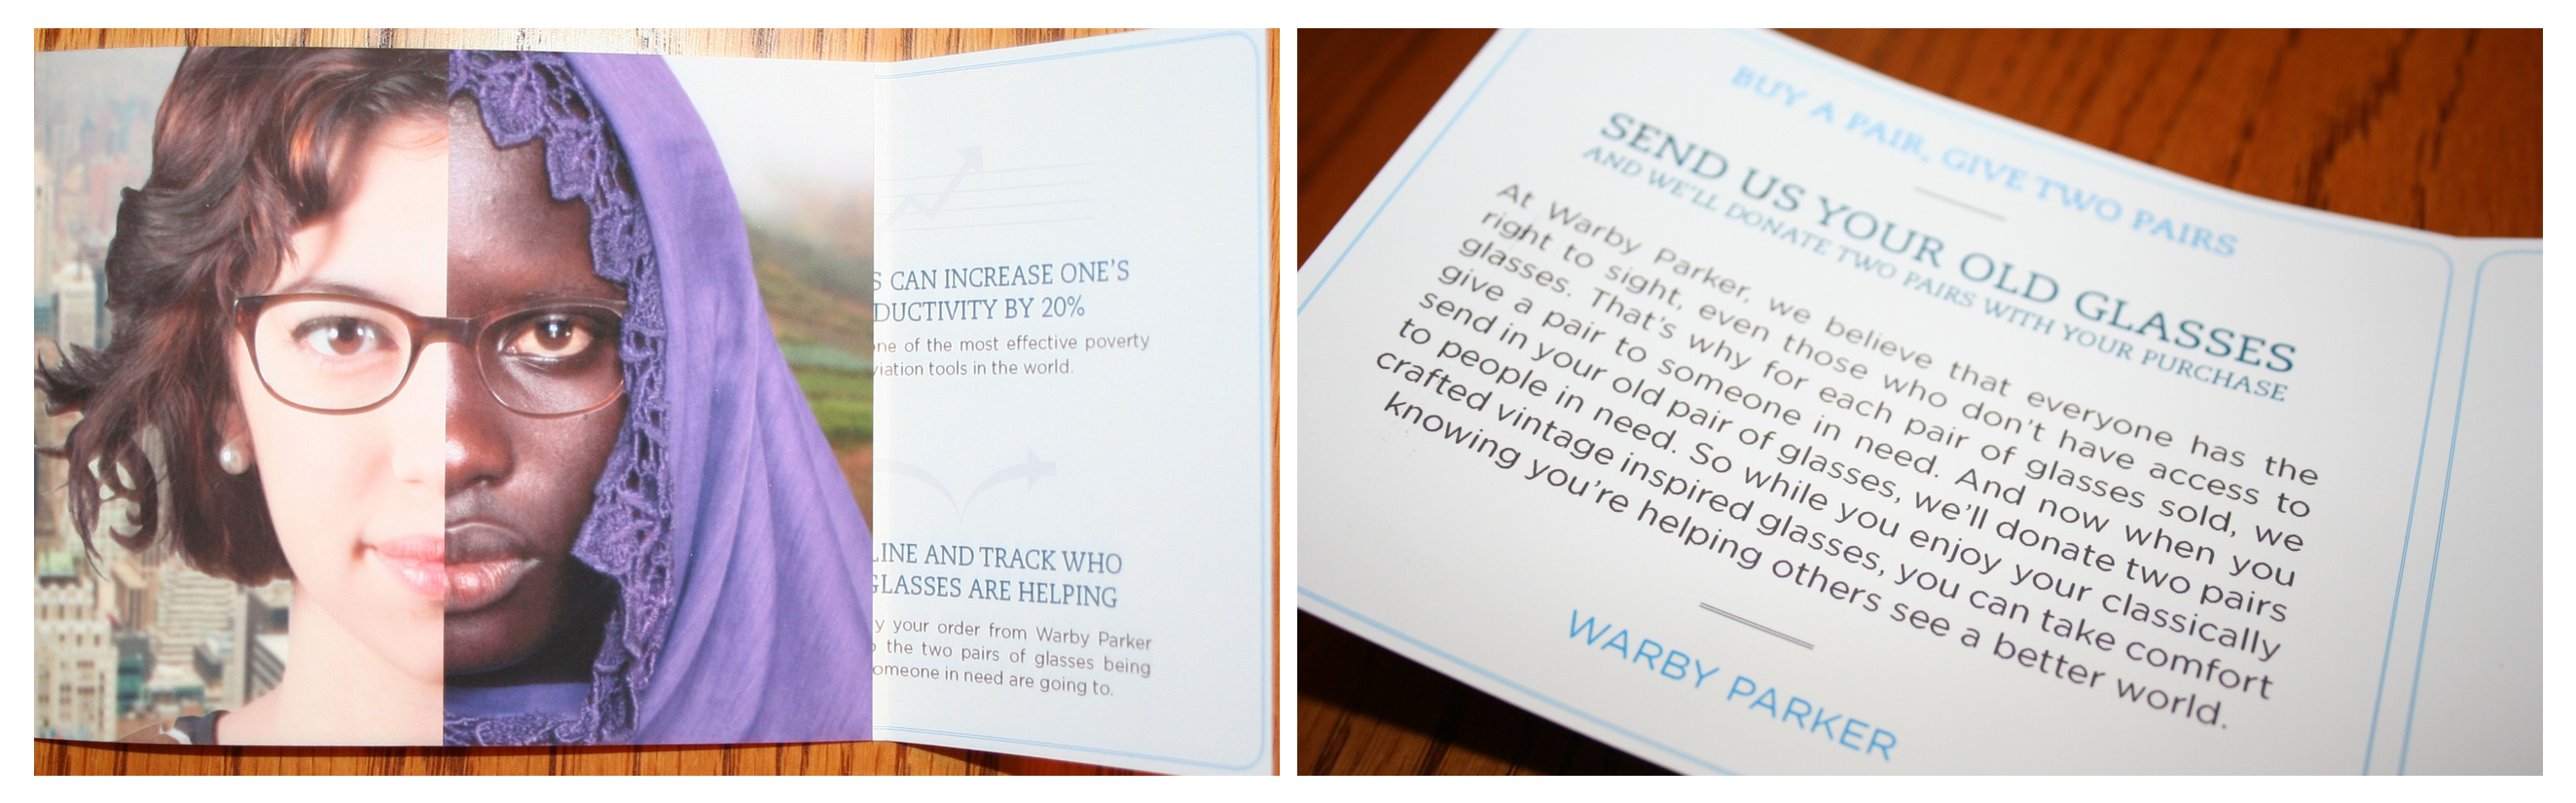 warby parker direct mail